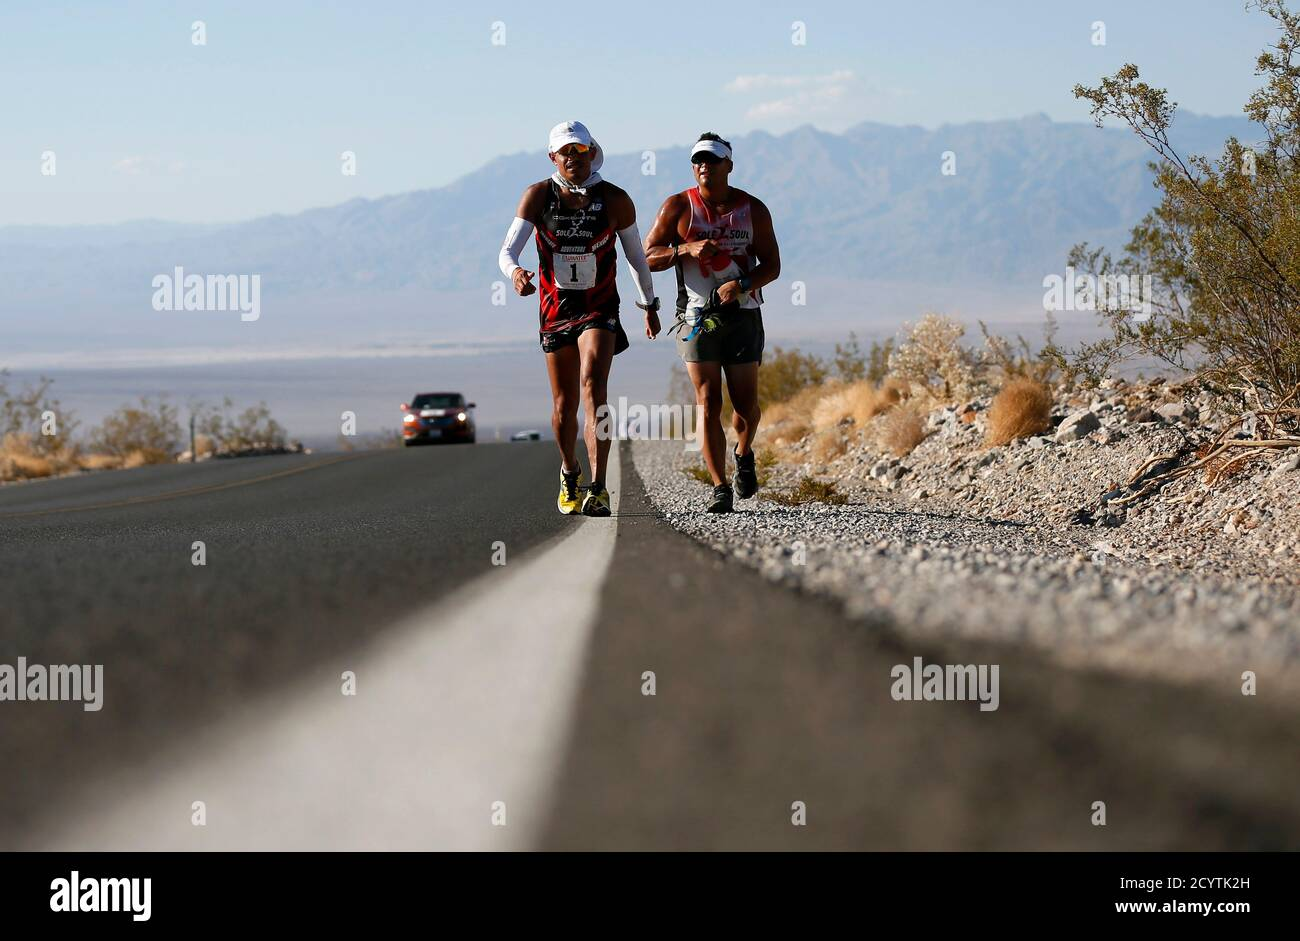 Oswaldo Lopez of Mexico, 41, (L) competes in the Badwater Ultramarathon in Death Valley National Park, California July 15, 2013. The 135-mile (217 km) race, which bills itself as the world's toughest foot race, goes from Death Valley to Mt. Whitney, California in temperatures which can reach 130 degrees Fahrenheit (55 Celsius).  REUTERS/Lucy Nicholson (UNITED STATES - Tags: SPORT ATHLETICS ENVIRONMENT) Stock Photo